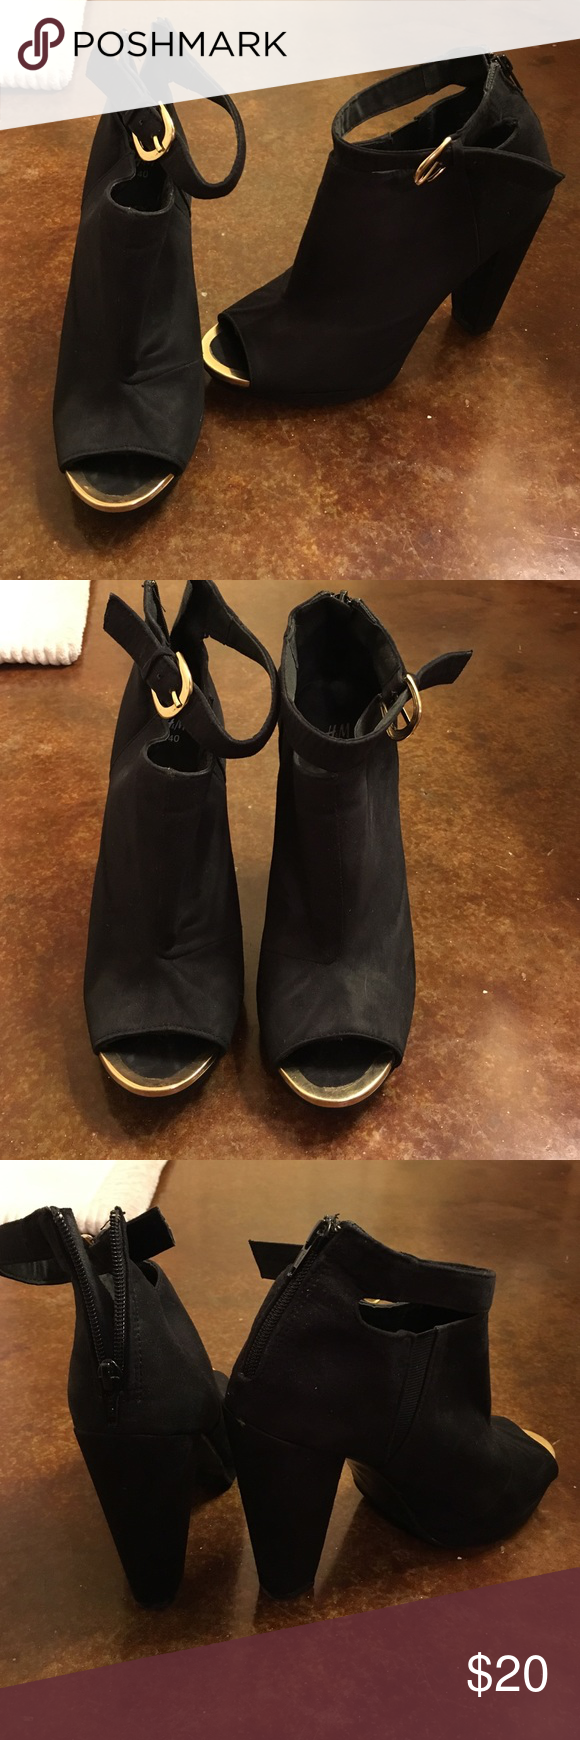 Suede H&M Open Toe Booties Only wear on bottoms shown in picture, worn only a few times! Bottom says 40 (10) but fit more like a 39 (9-9.5) H&M Shoes Ankle Boots & Booties